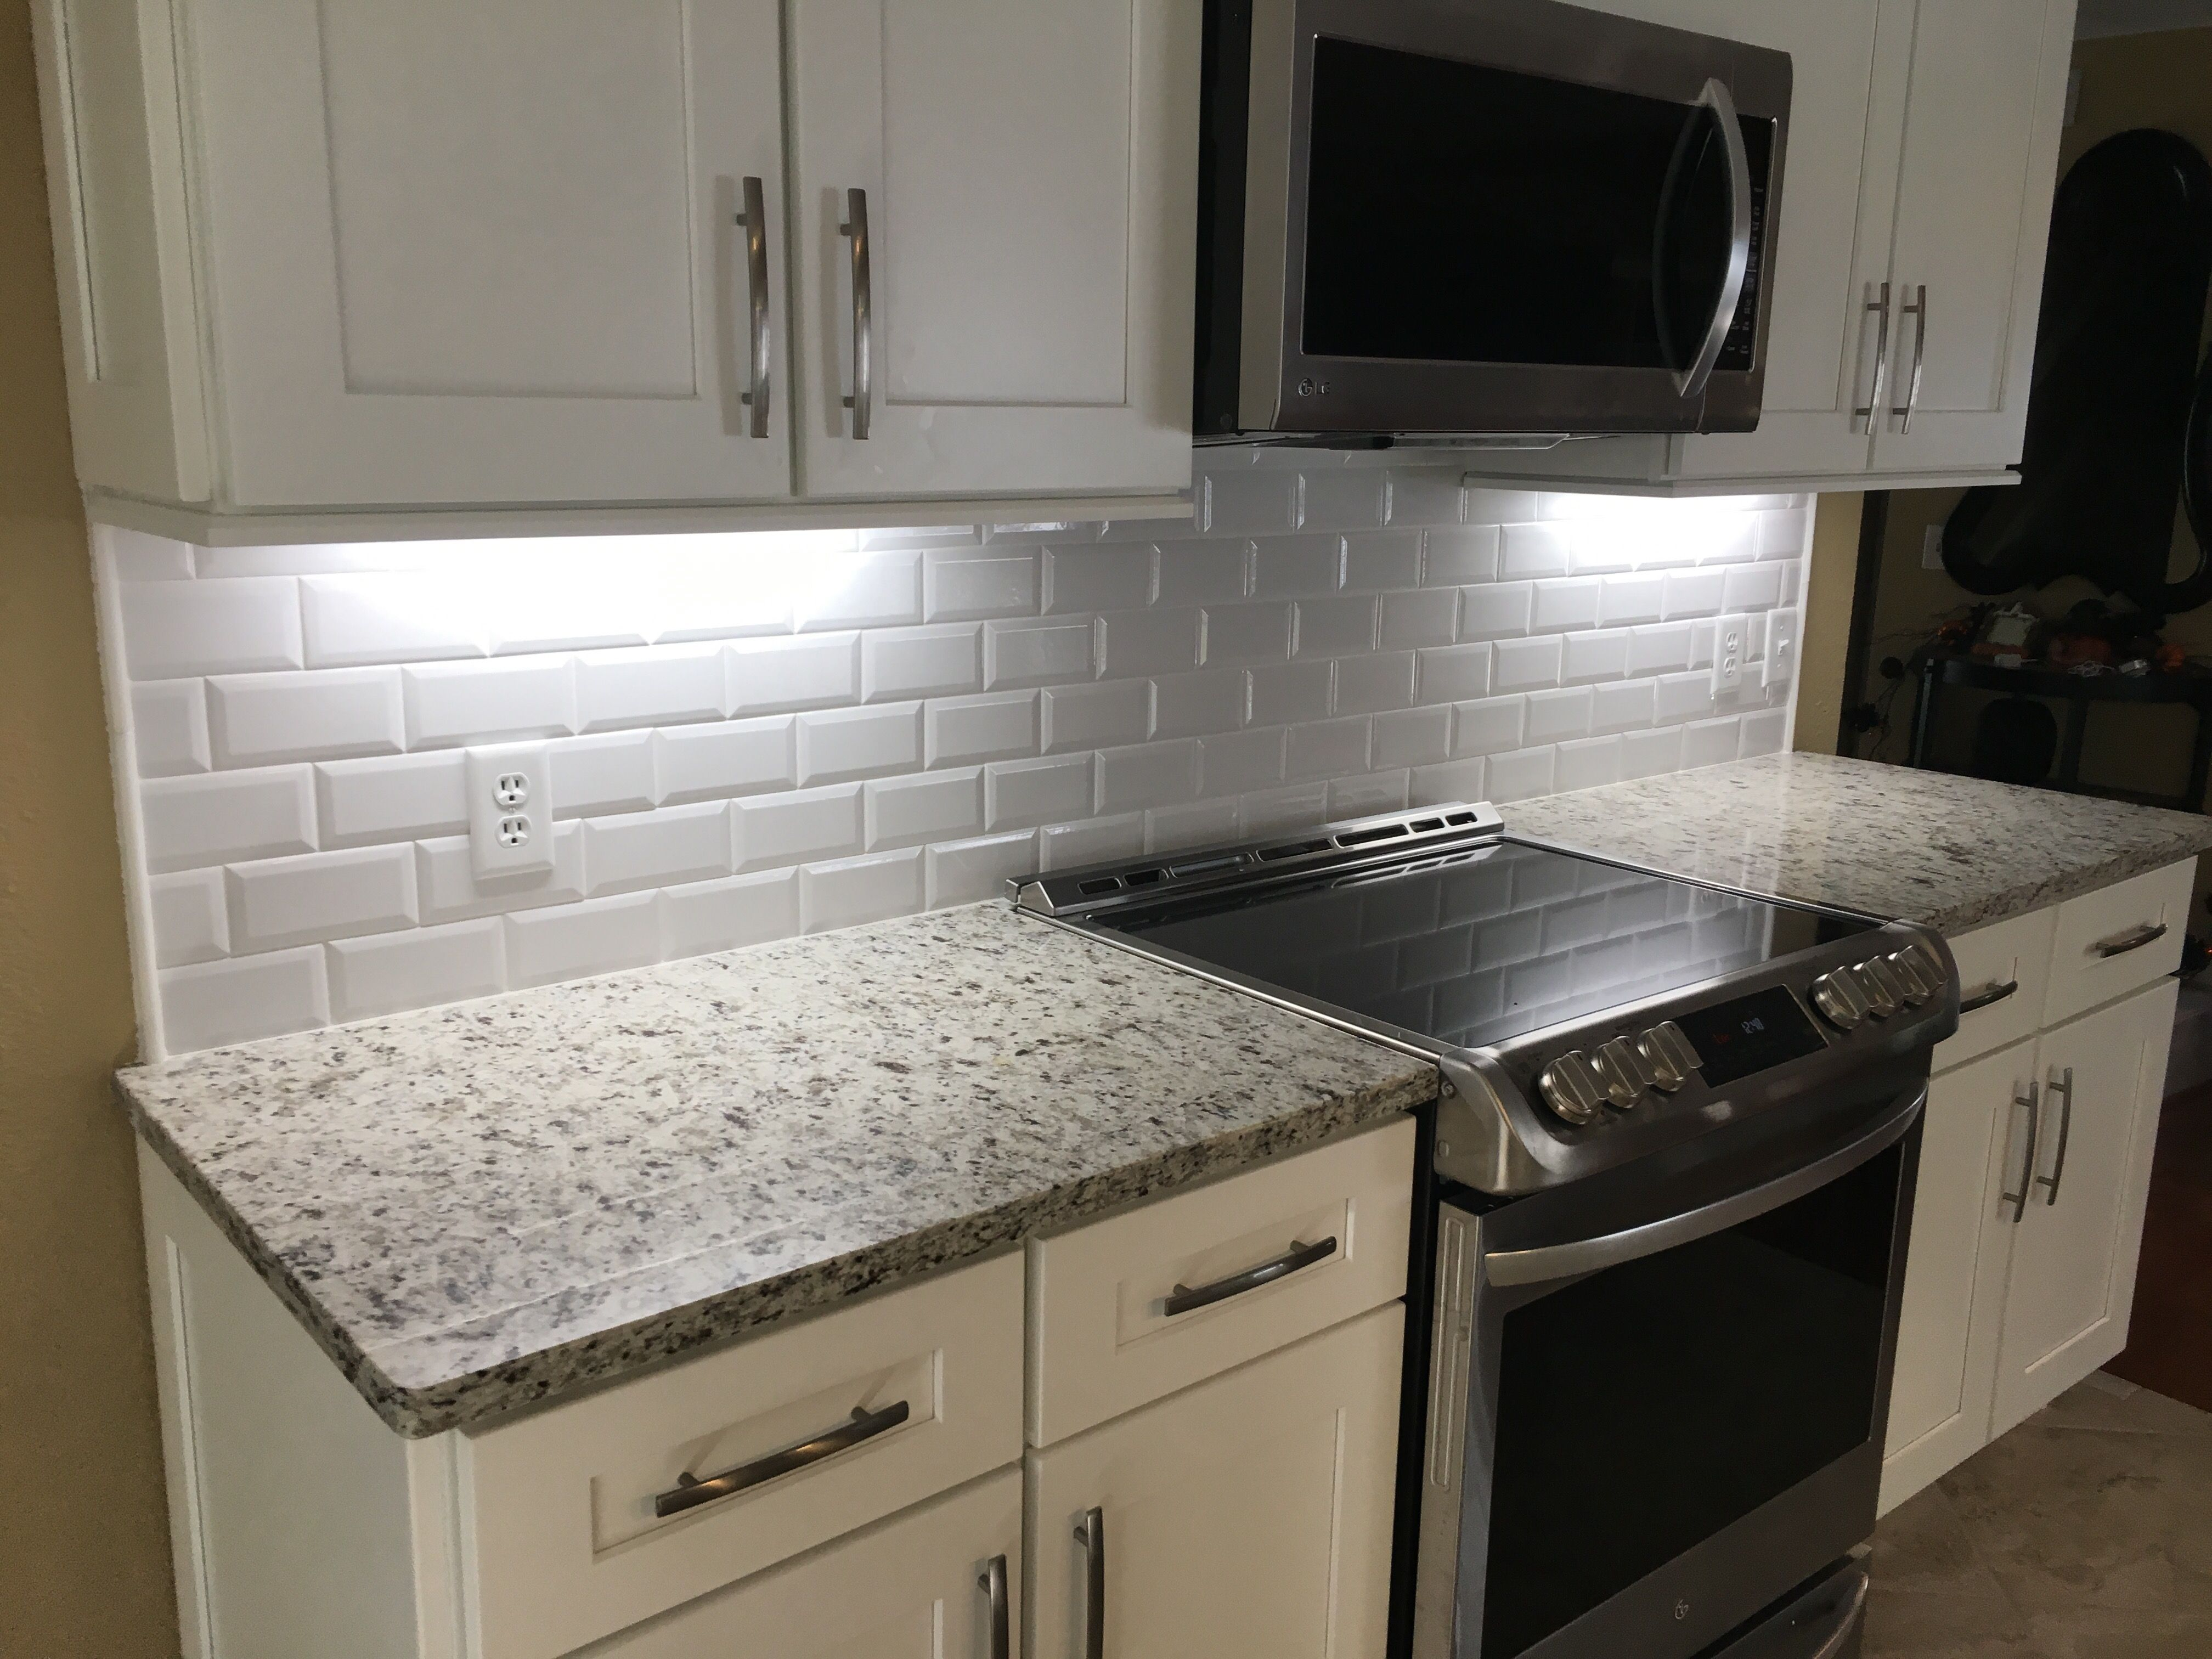 12 Subway Tile Backsplash Design Ideas Installation Tips Enthusiasthome Beveled Subway Tile Beveled Subway Tile Kitchen Kitchen Tiles Backsplash